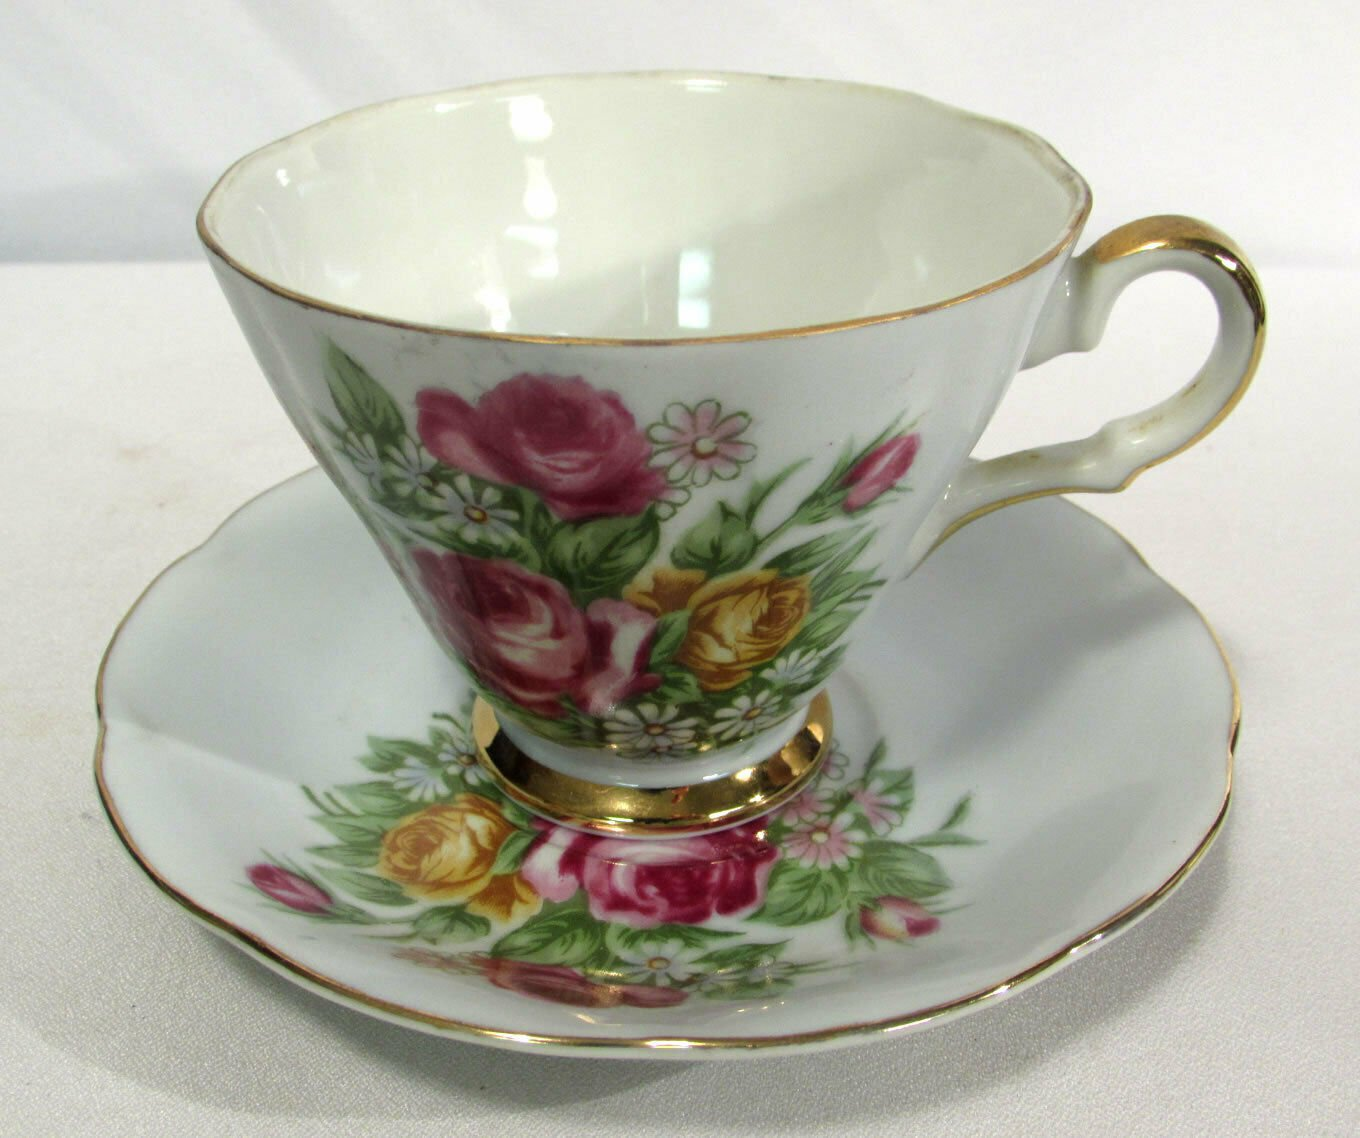 Vintage Lefton China Cup & Saucer Floral Gold Trim 438 Roses Daisies NICE